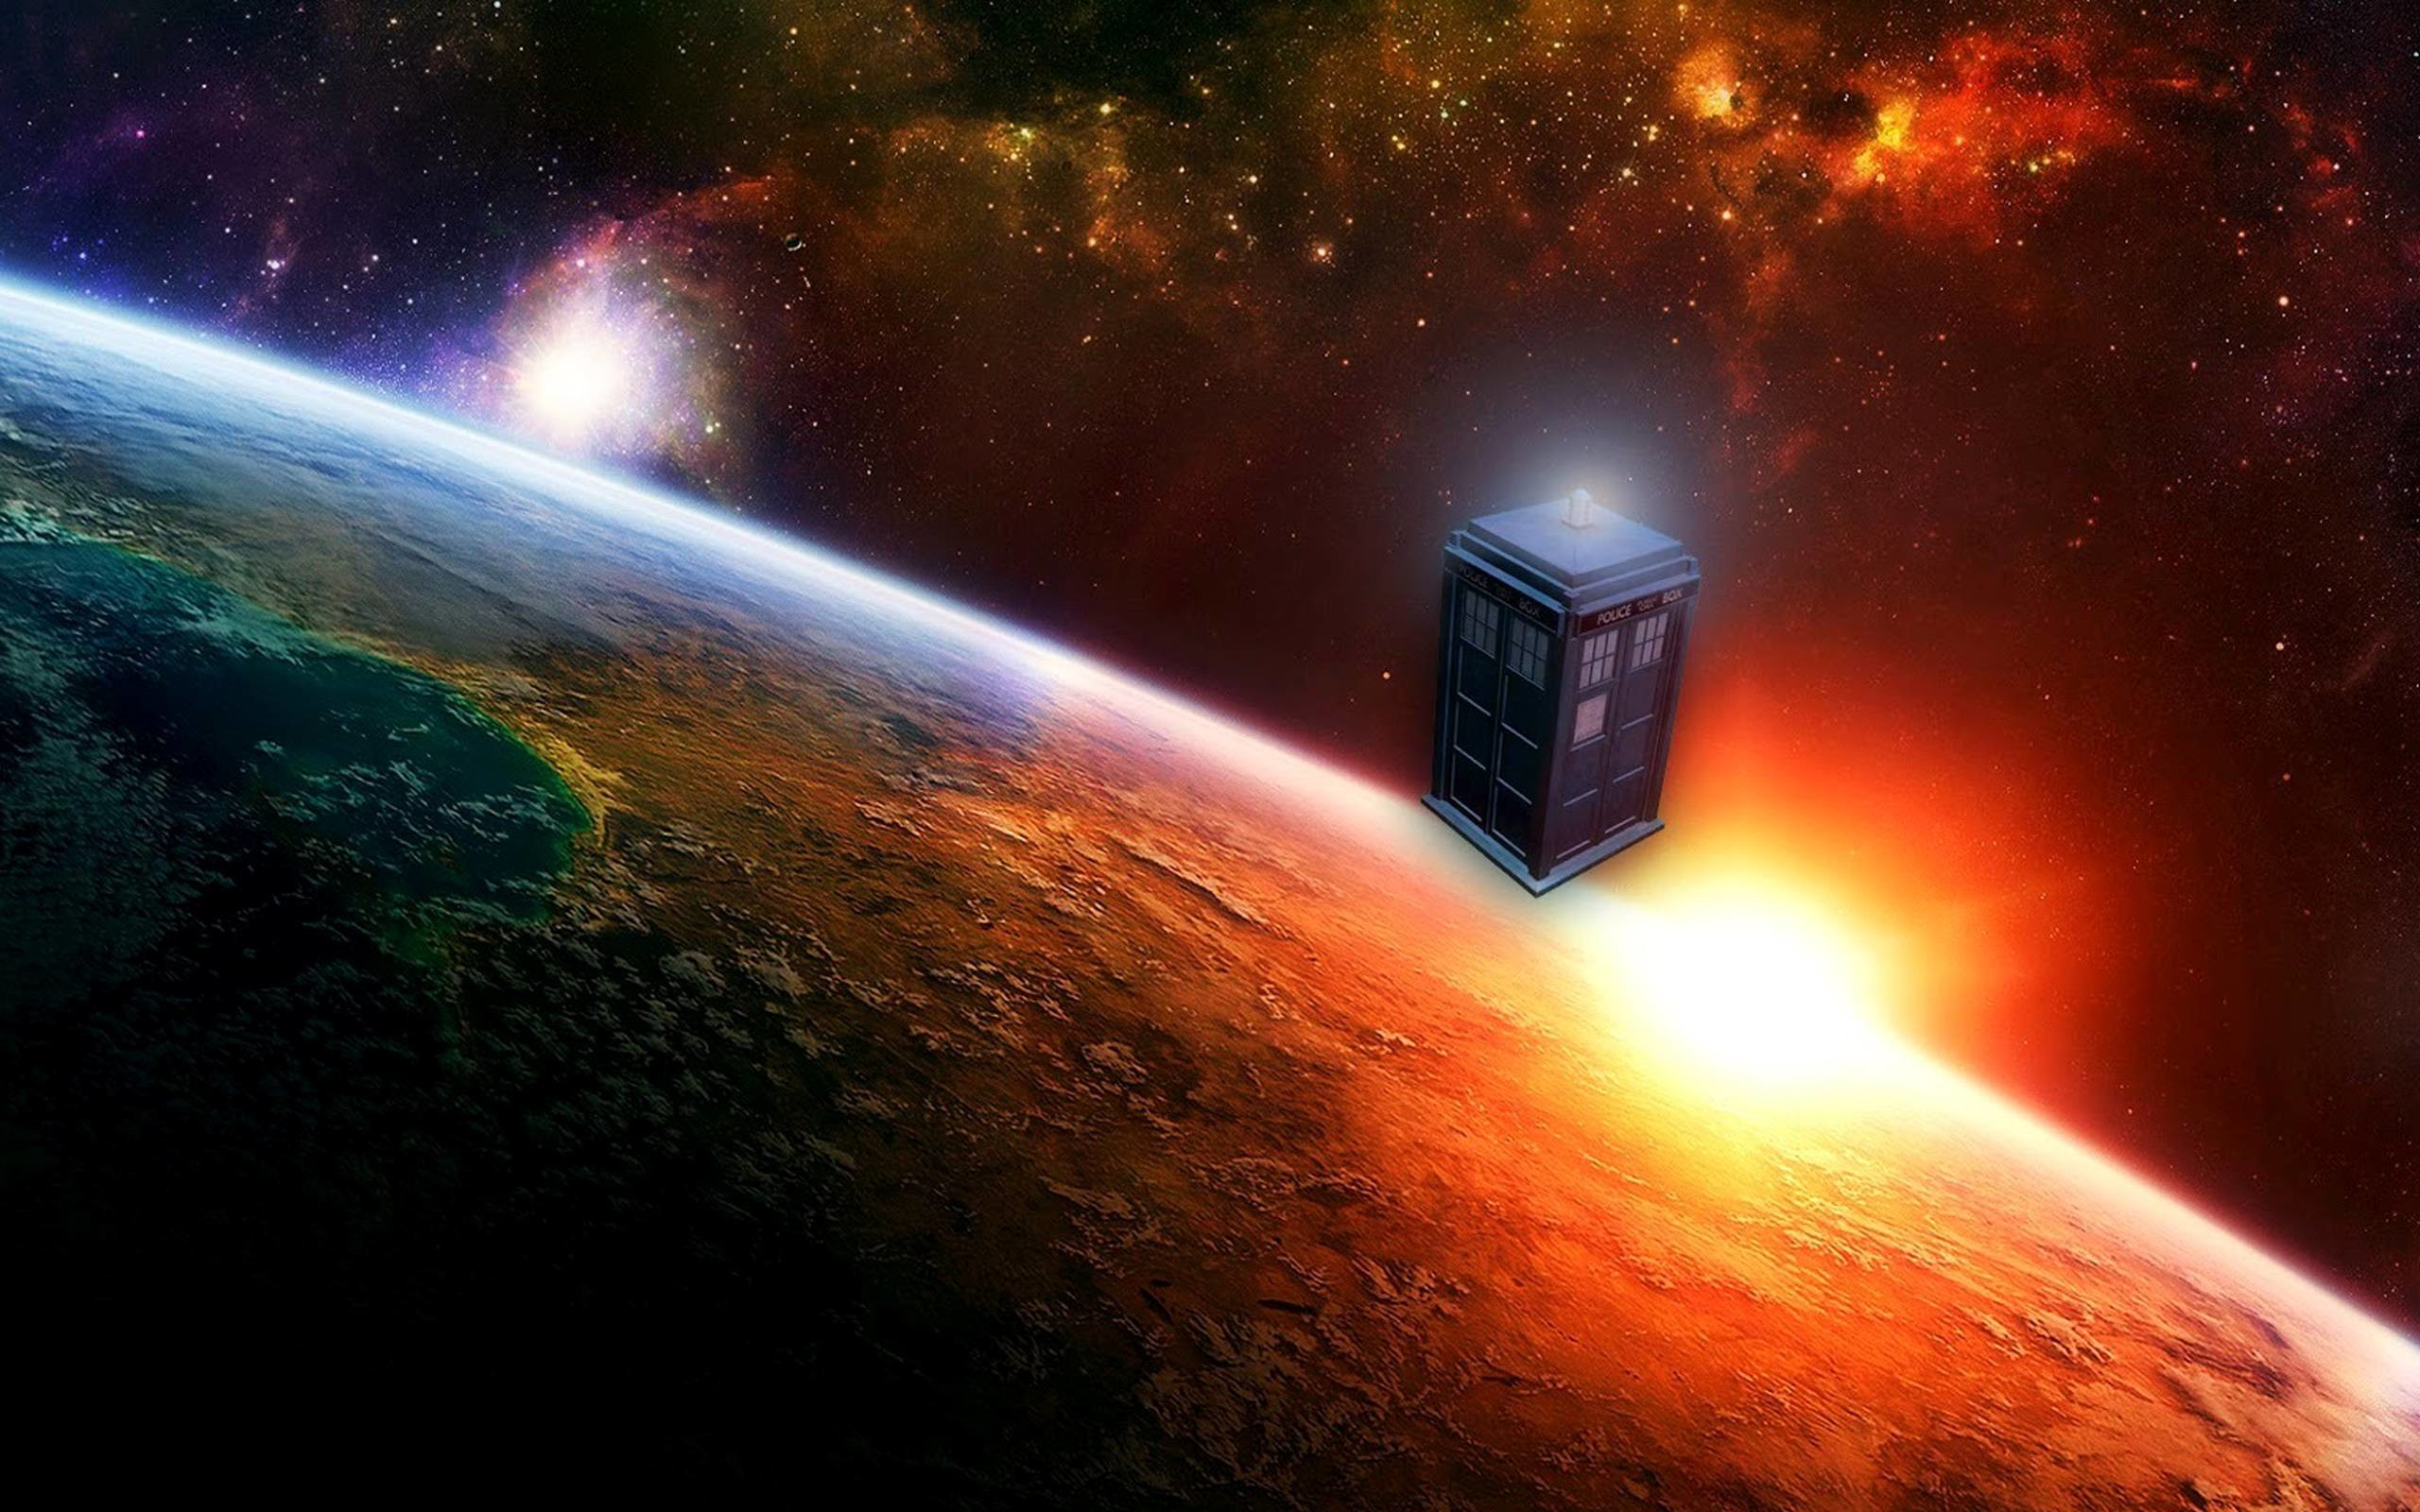 Doctor Who Cool Backgrounds Wallpaper – HD Wallpapers